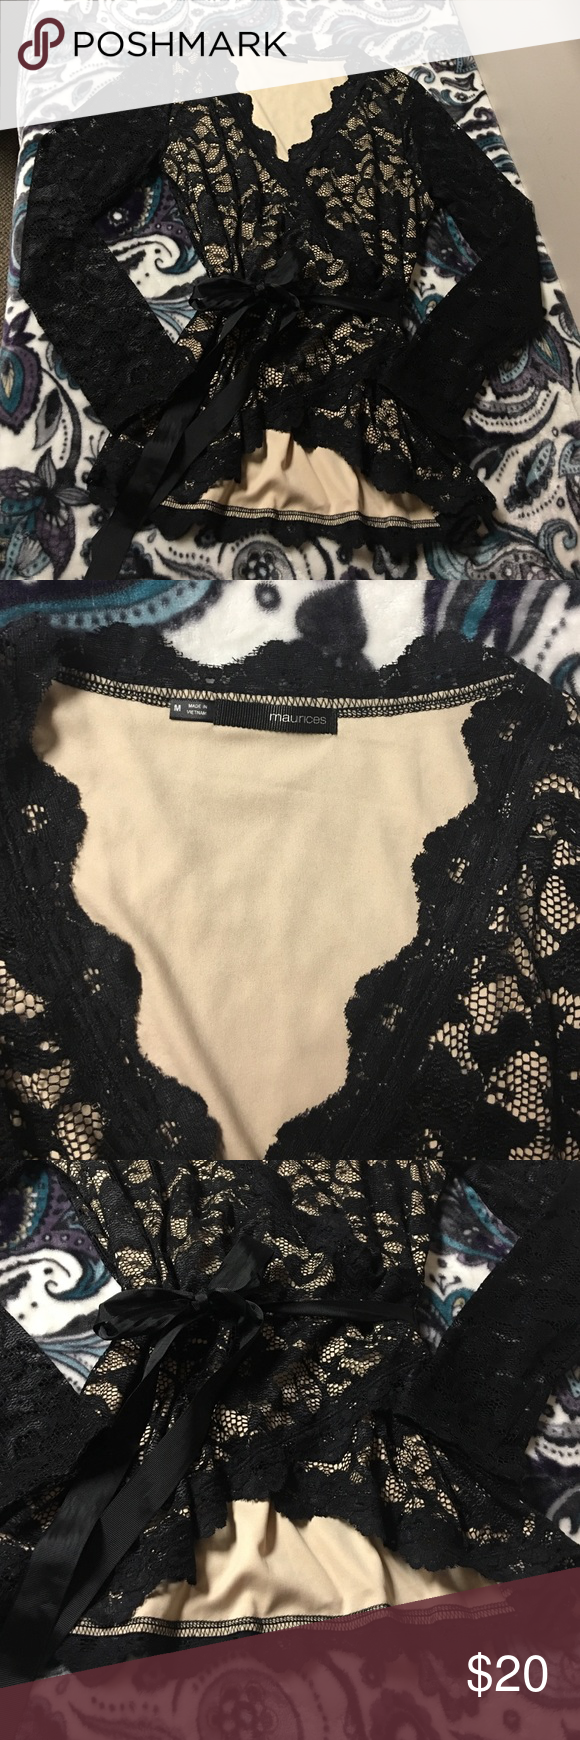 Lace Long Sleeve Blouse Worn once to a Christmas party. Gorgeous and very sexy 😉 Maurices Tops Blouses